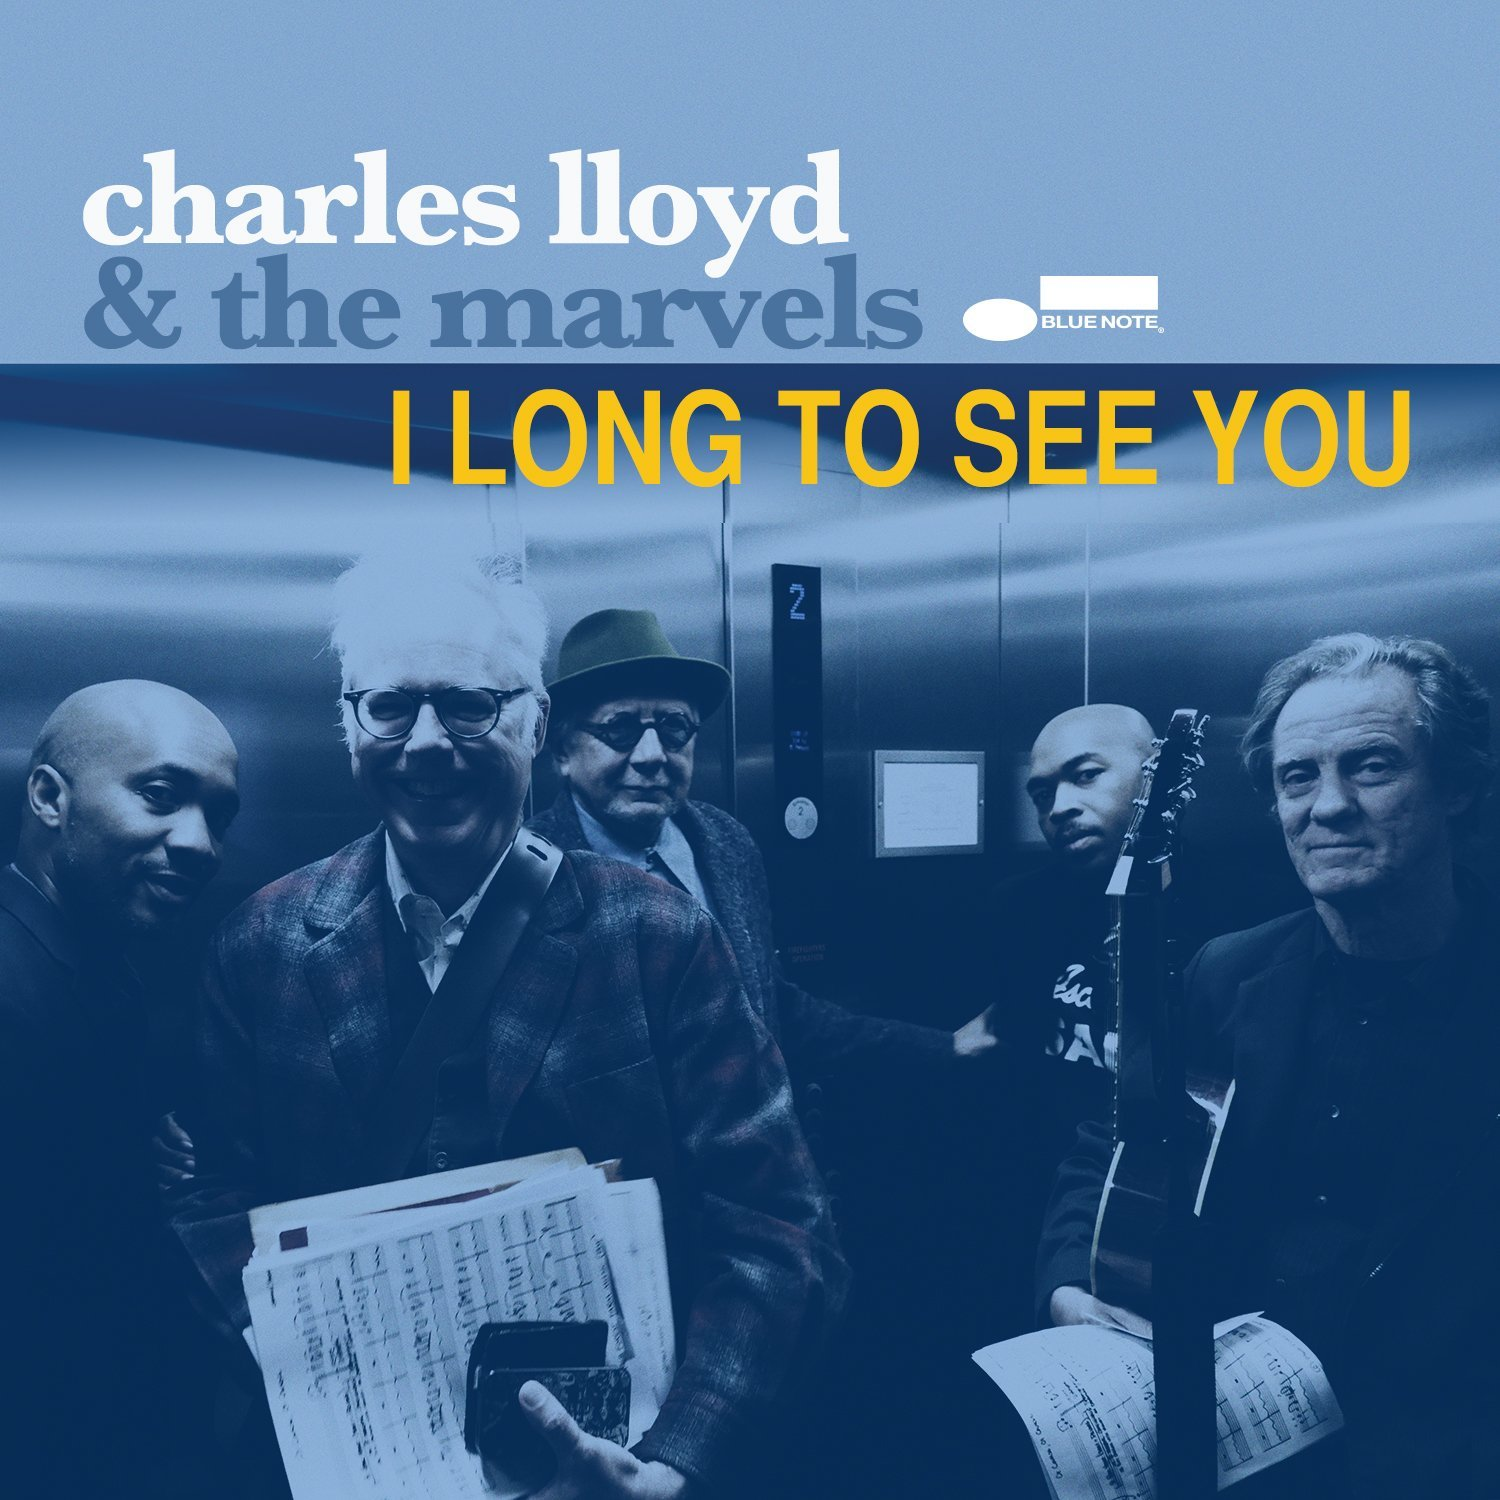 I long to see you Charles Lloyd, compositions & saxophone ténor Norah Jones, Willie Nelson, chant Marvels (The), ensemble instrumental